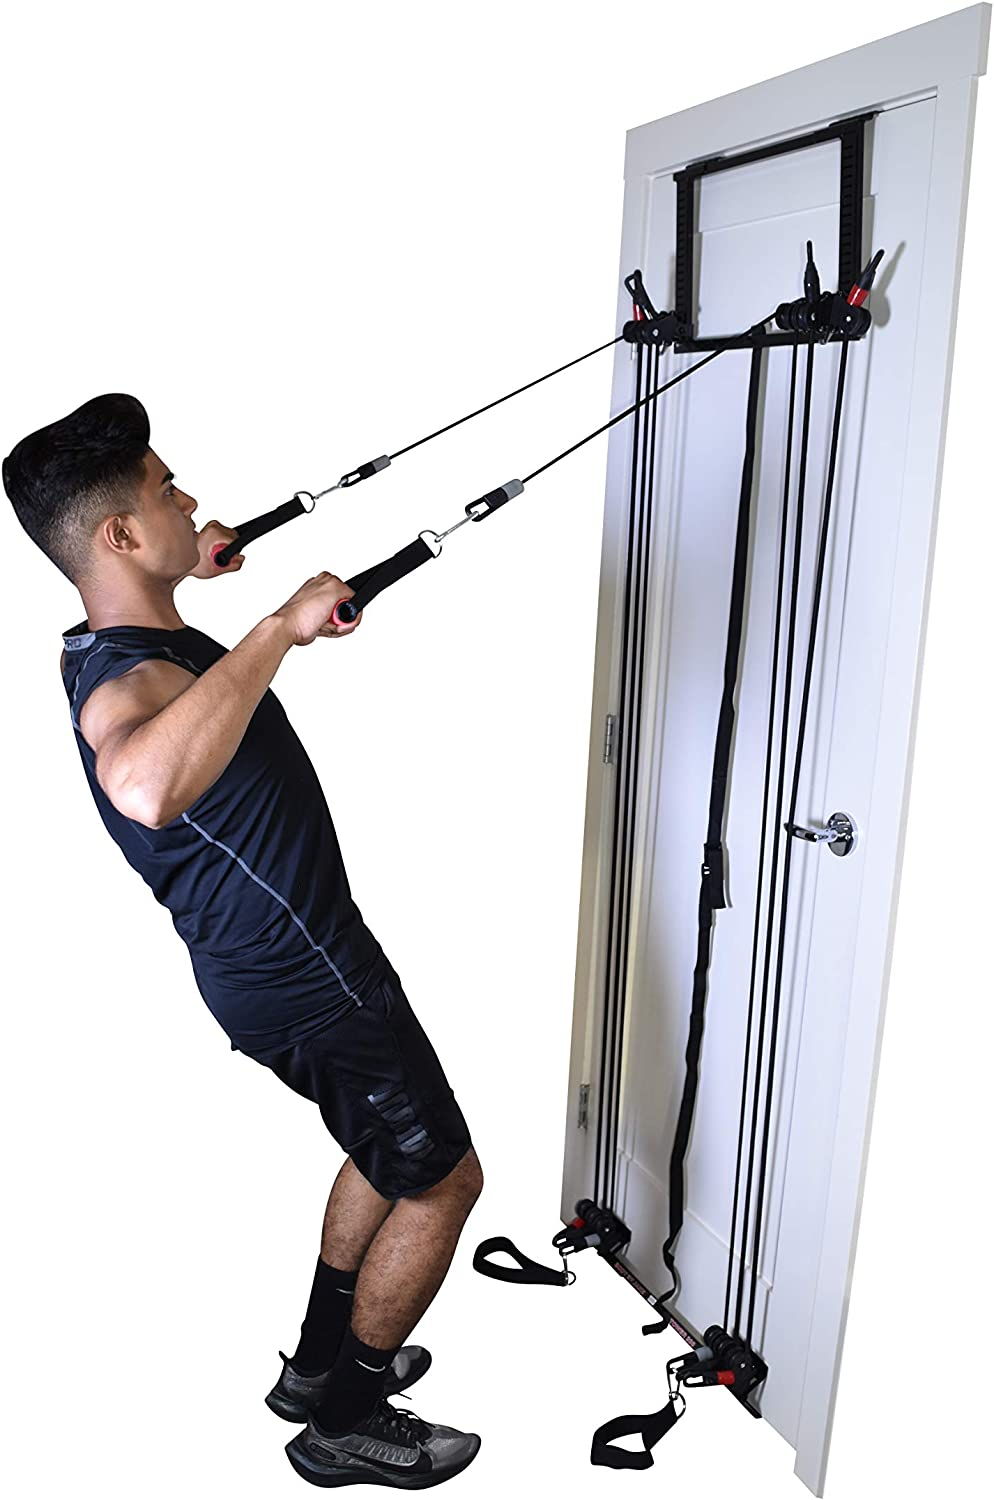 Tower 200 Complete Door Gym Full Body Workout System Fitness Exercise Home Gym Strength Training